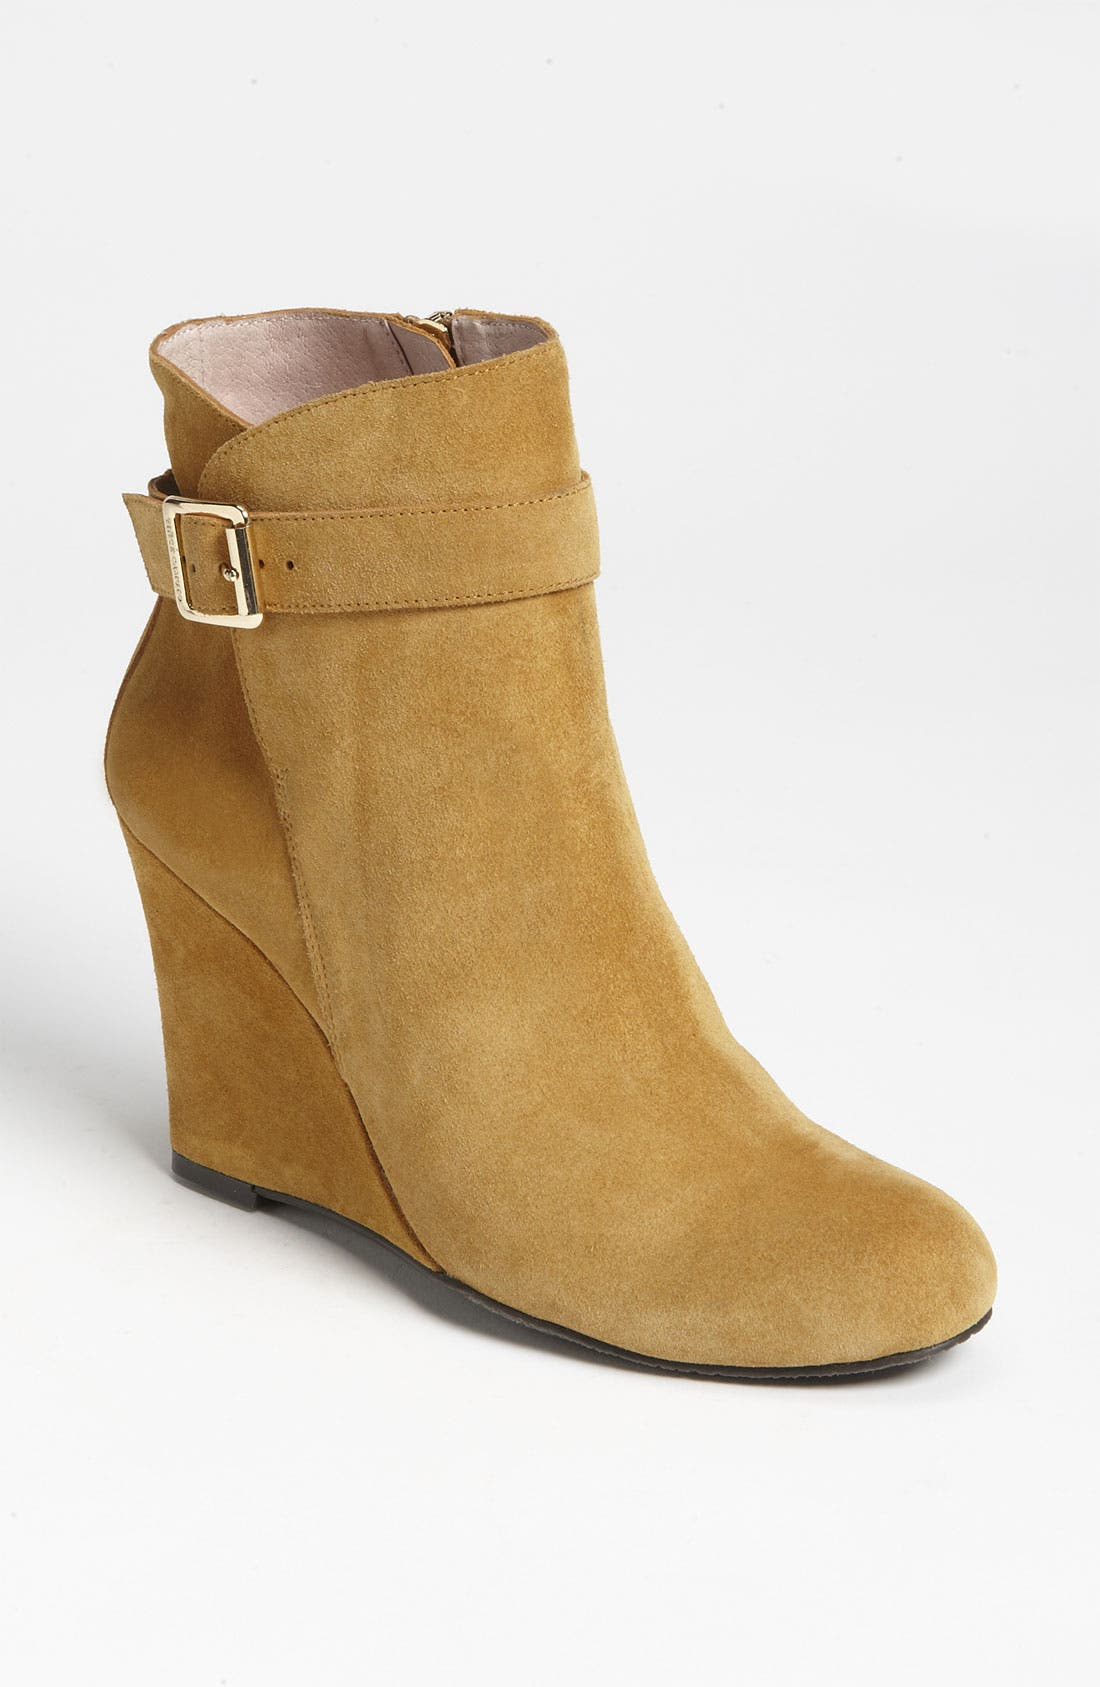 Alternate Image 1 Selected - Vince Camuto 'Dena' Bootie